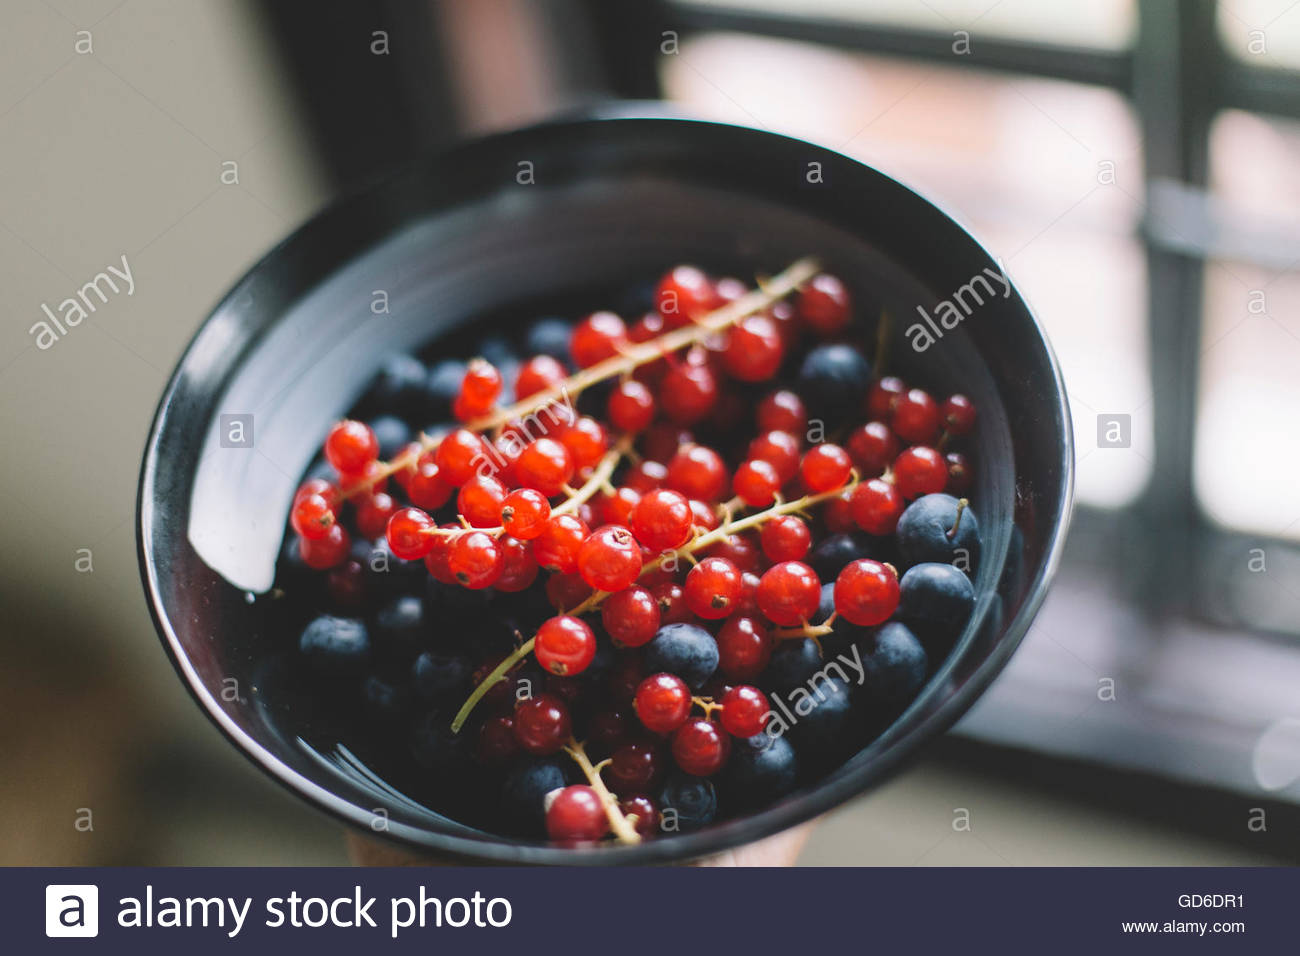 Cranberries and blueberries in a black  Bowl on neutral background - Stock Image